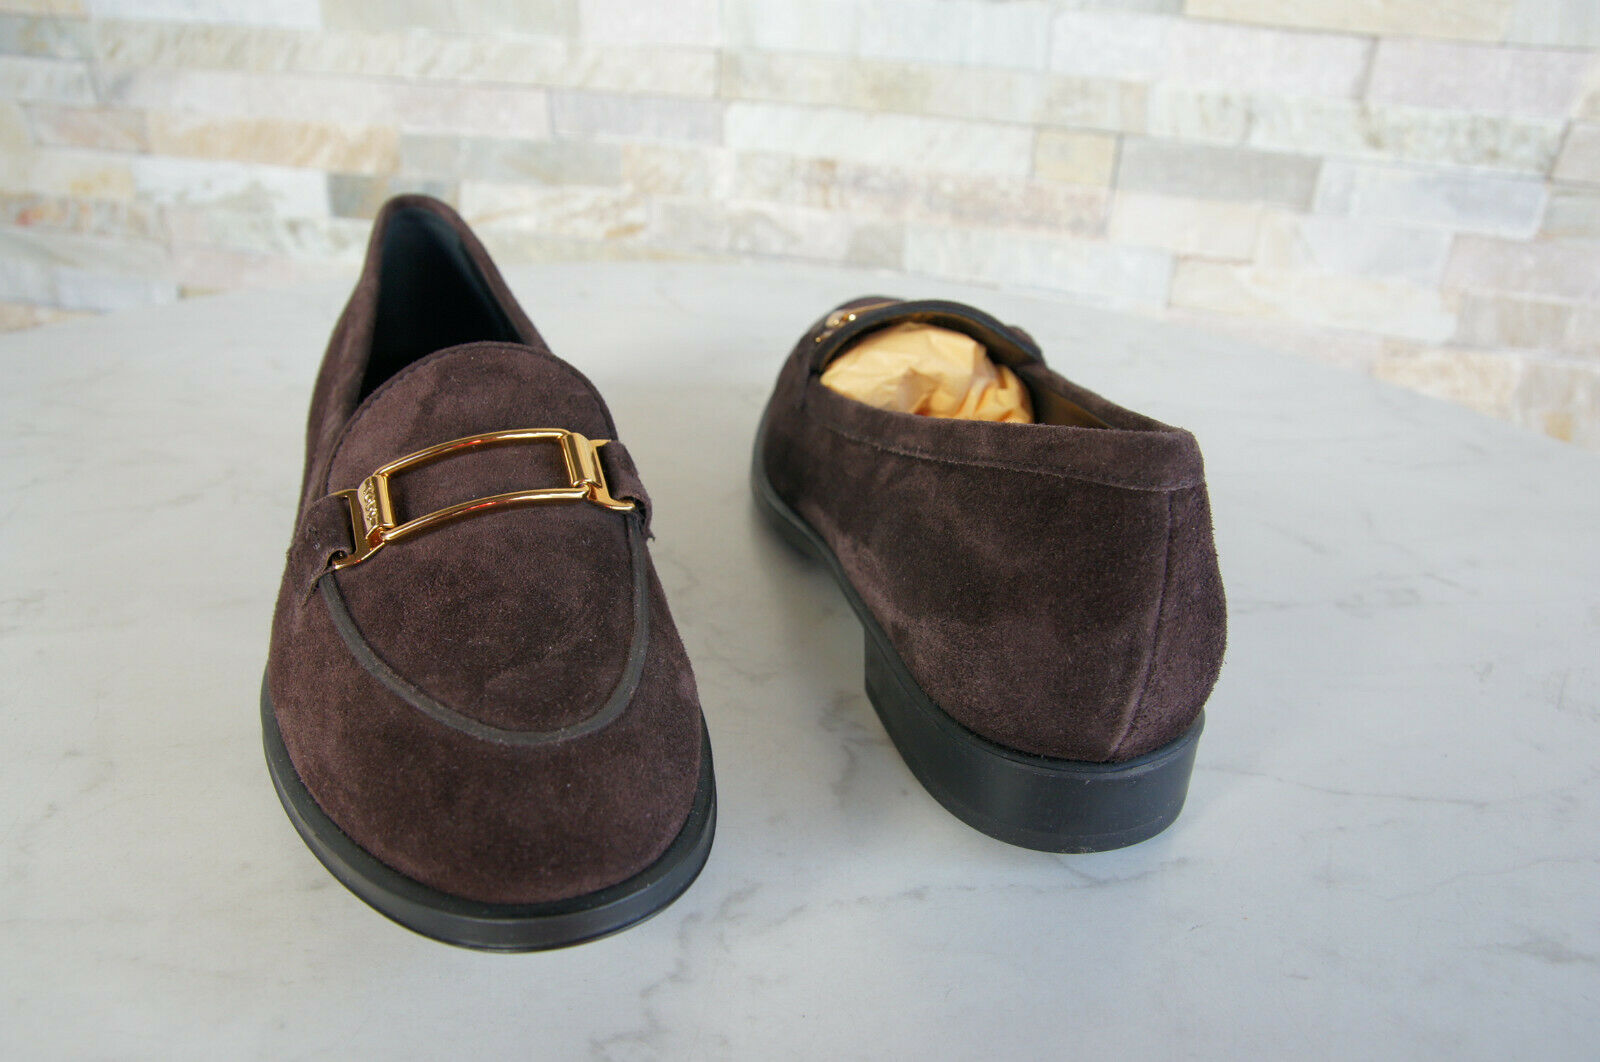 Tods Tod Tod Tod ´S 36,5 Slipper shoes Loafers shoes Dark Brown New Formerly Rrp 78e4a6